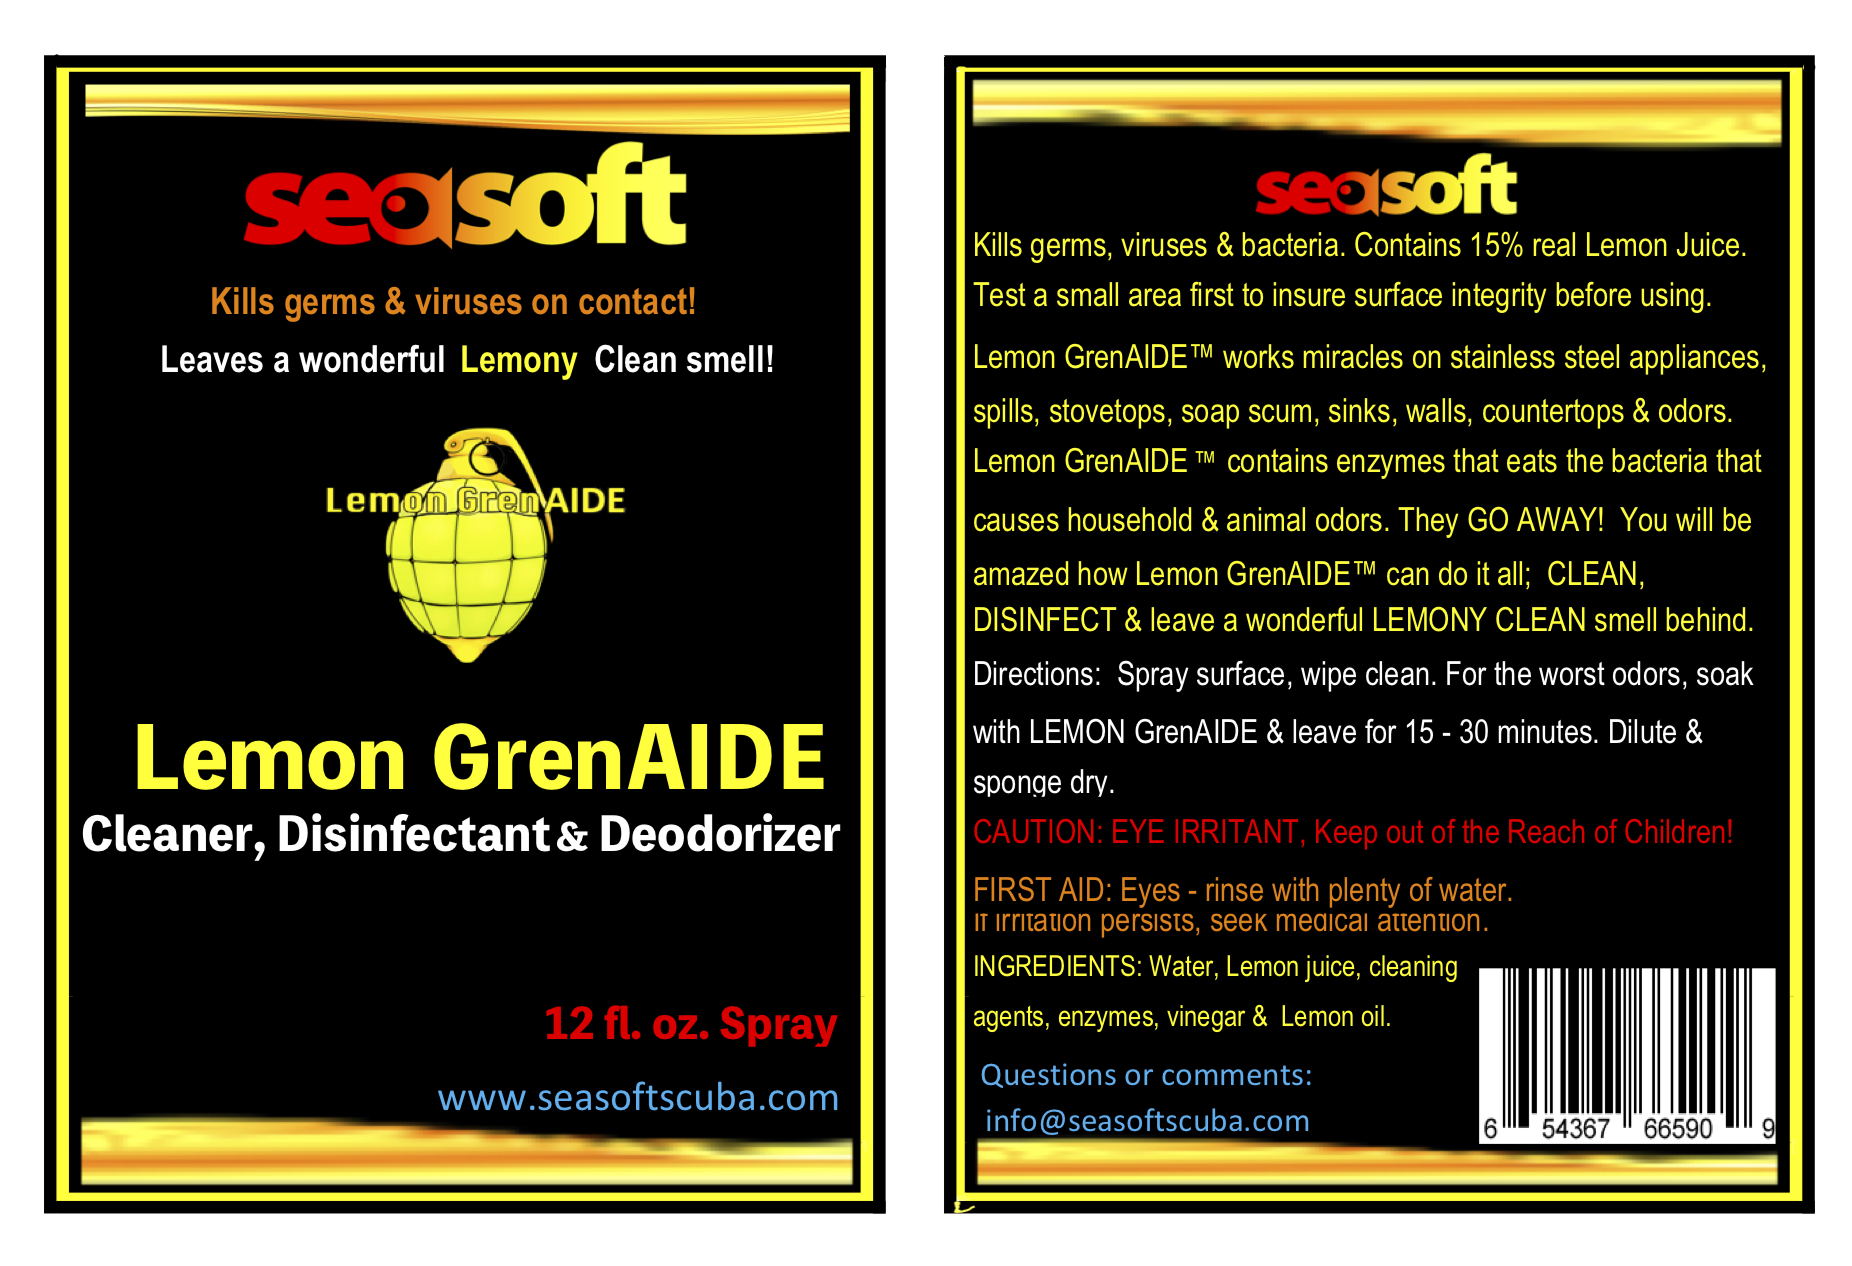 SEASOFT's Lemon GrenAIDE™ 24 oz. Cleaner, STINK Killer, and Deodorizer SPRAY for stinky gear, countertops, most surfaces.